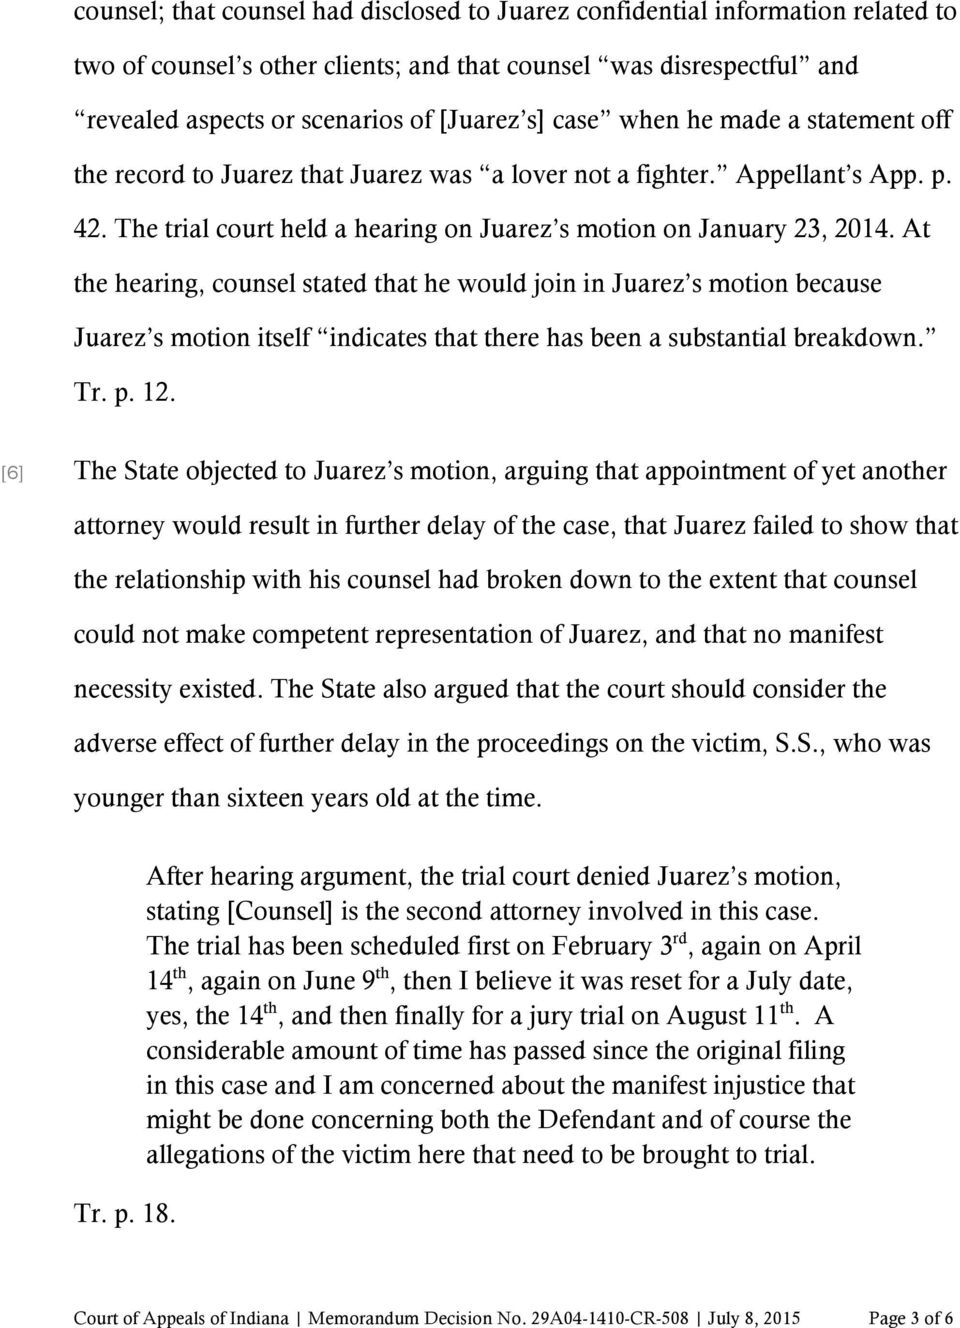 At the hearing, counsel stated that he would join in Juarez s motion because Juarez s motion itself indicates that there has been a substantial breakdown. Tr. p. 12.